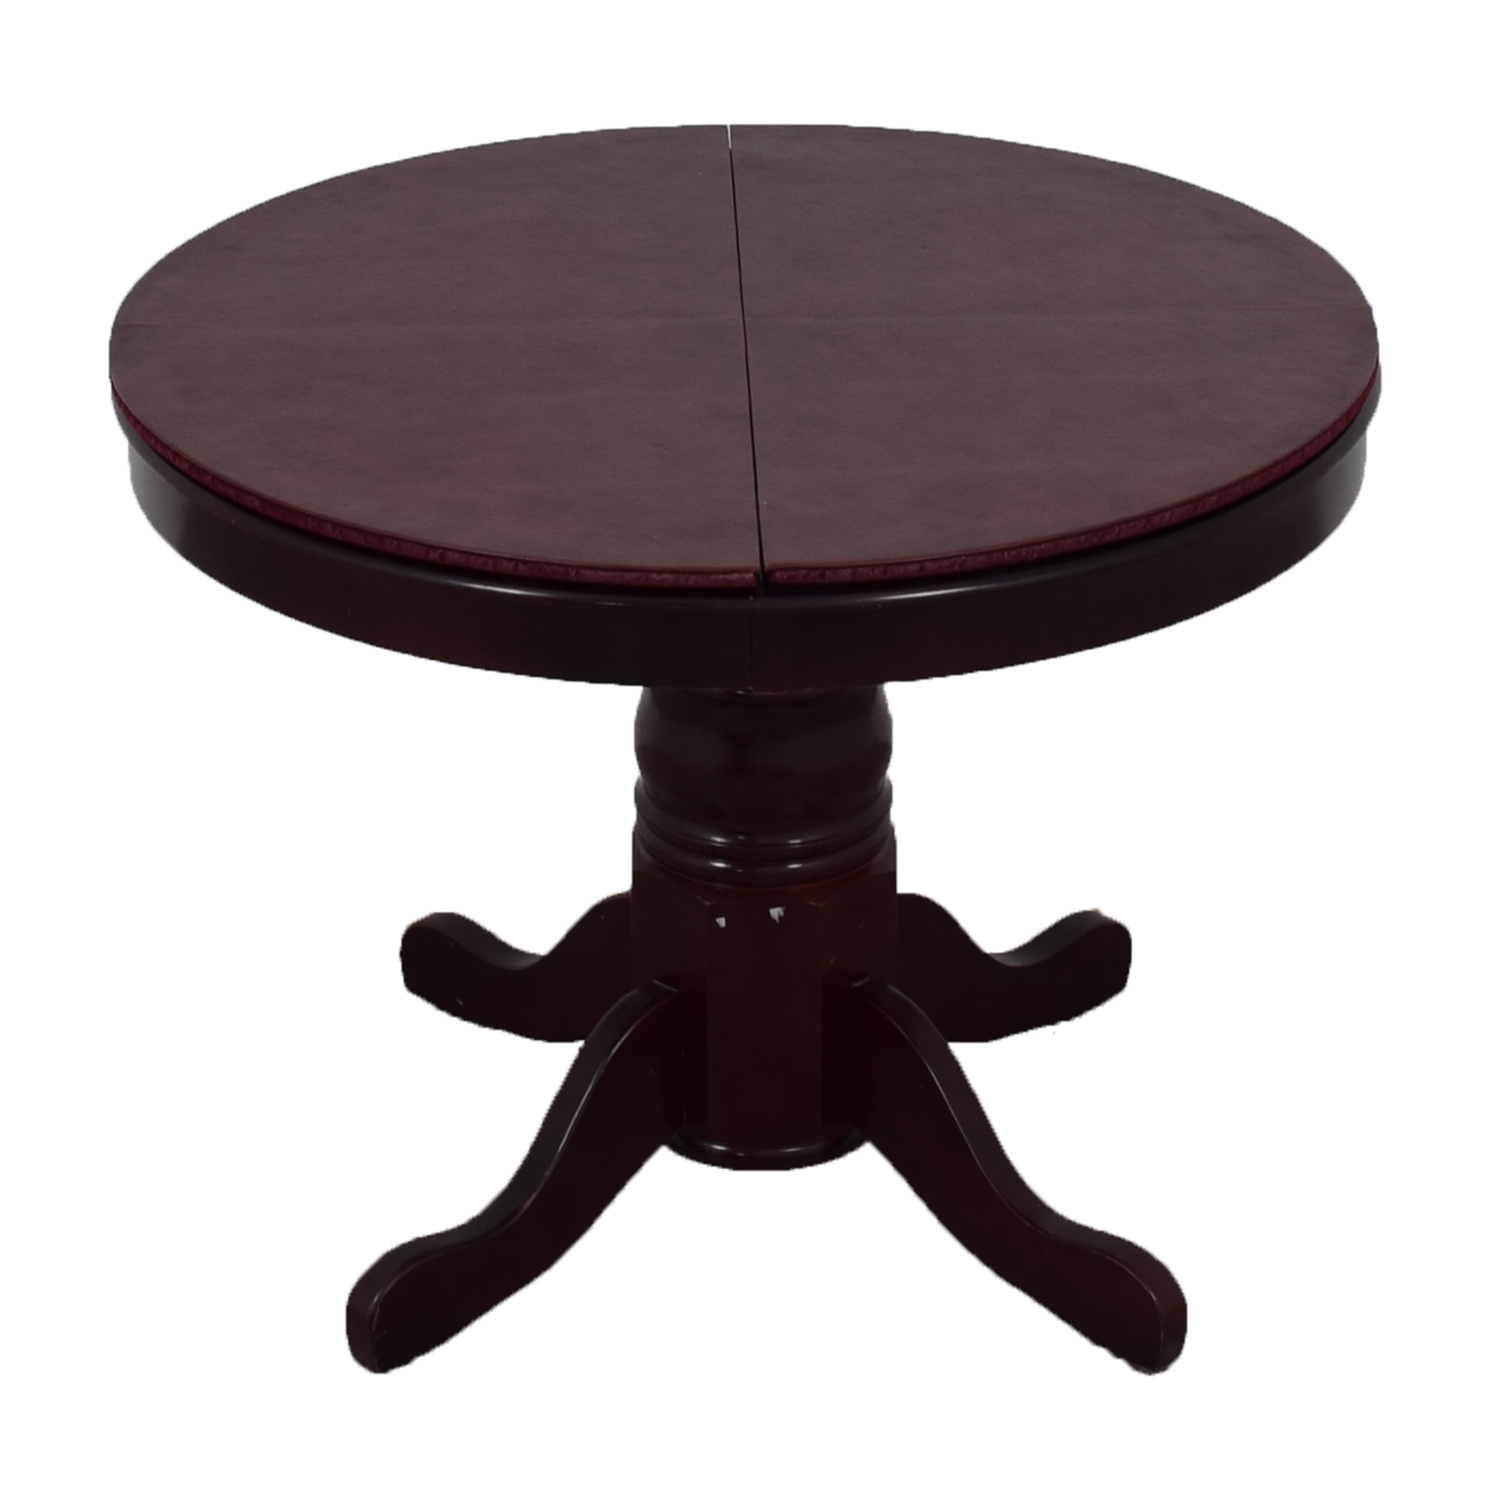 Round Extendable Dining Table price